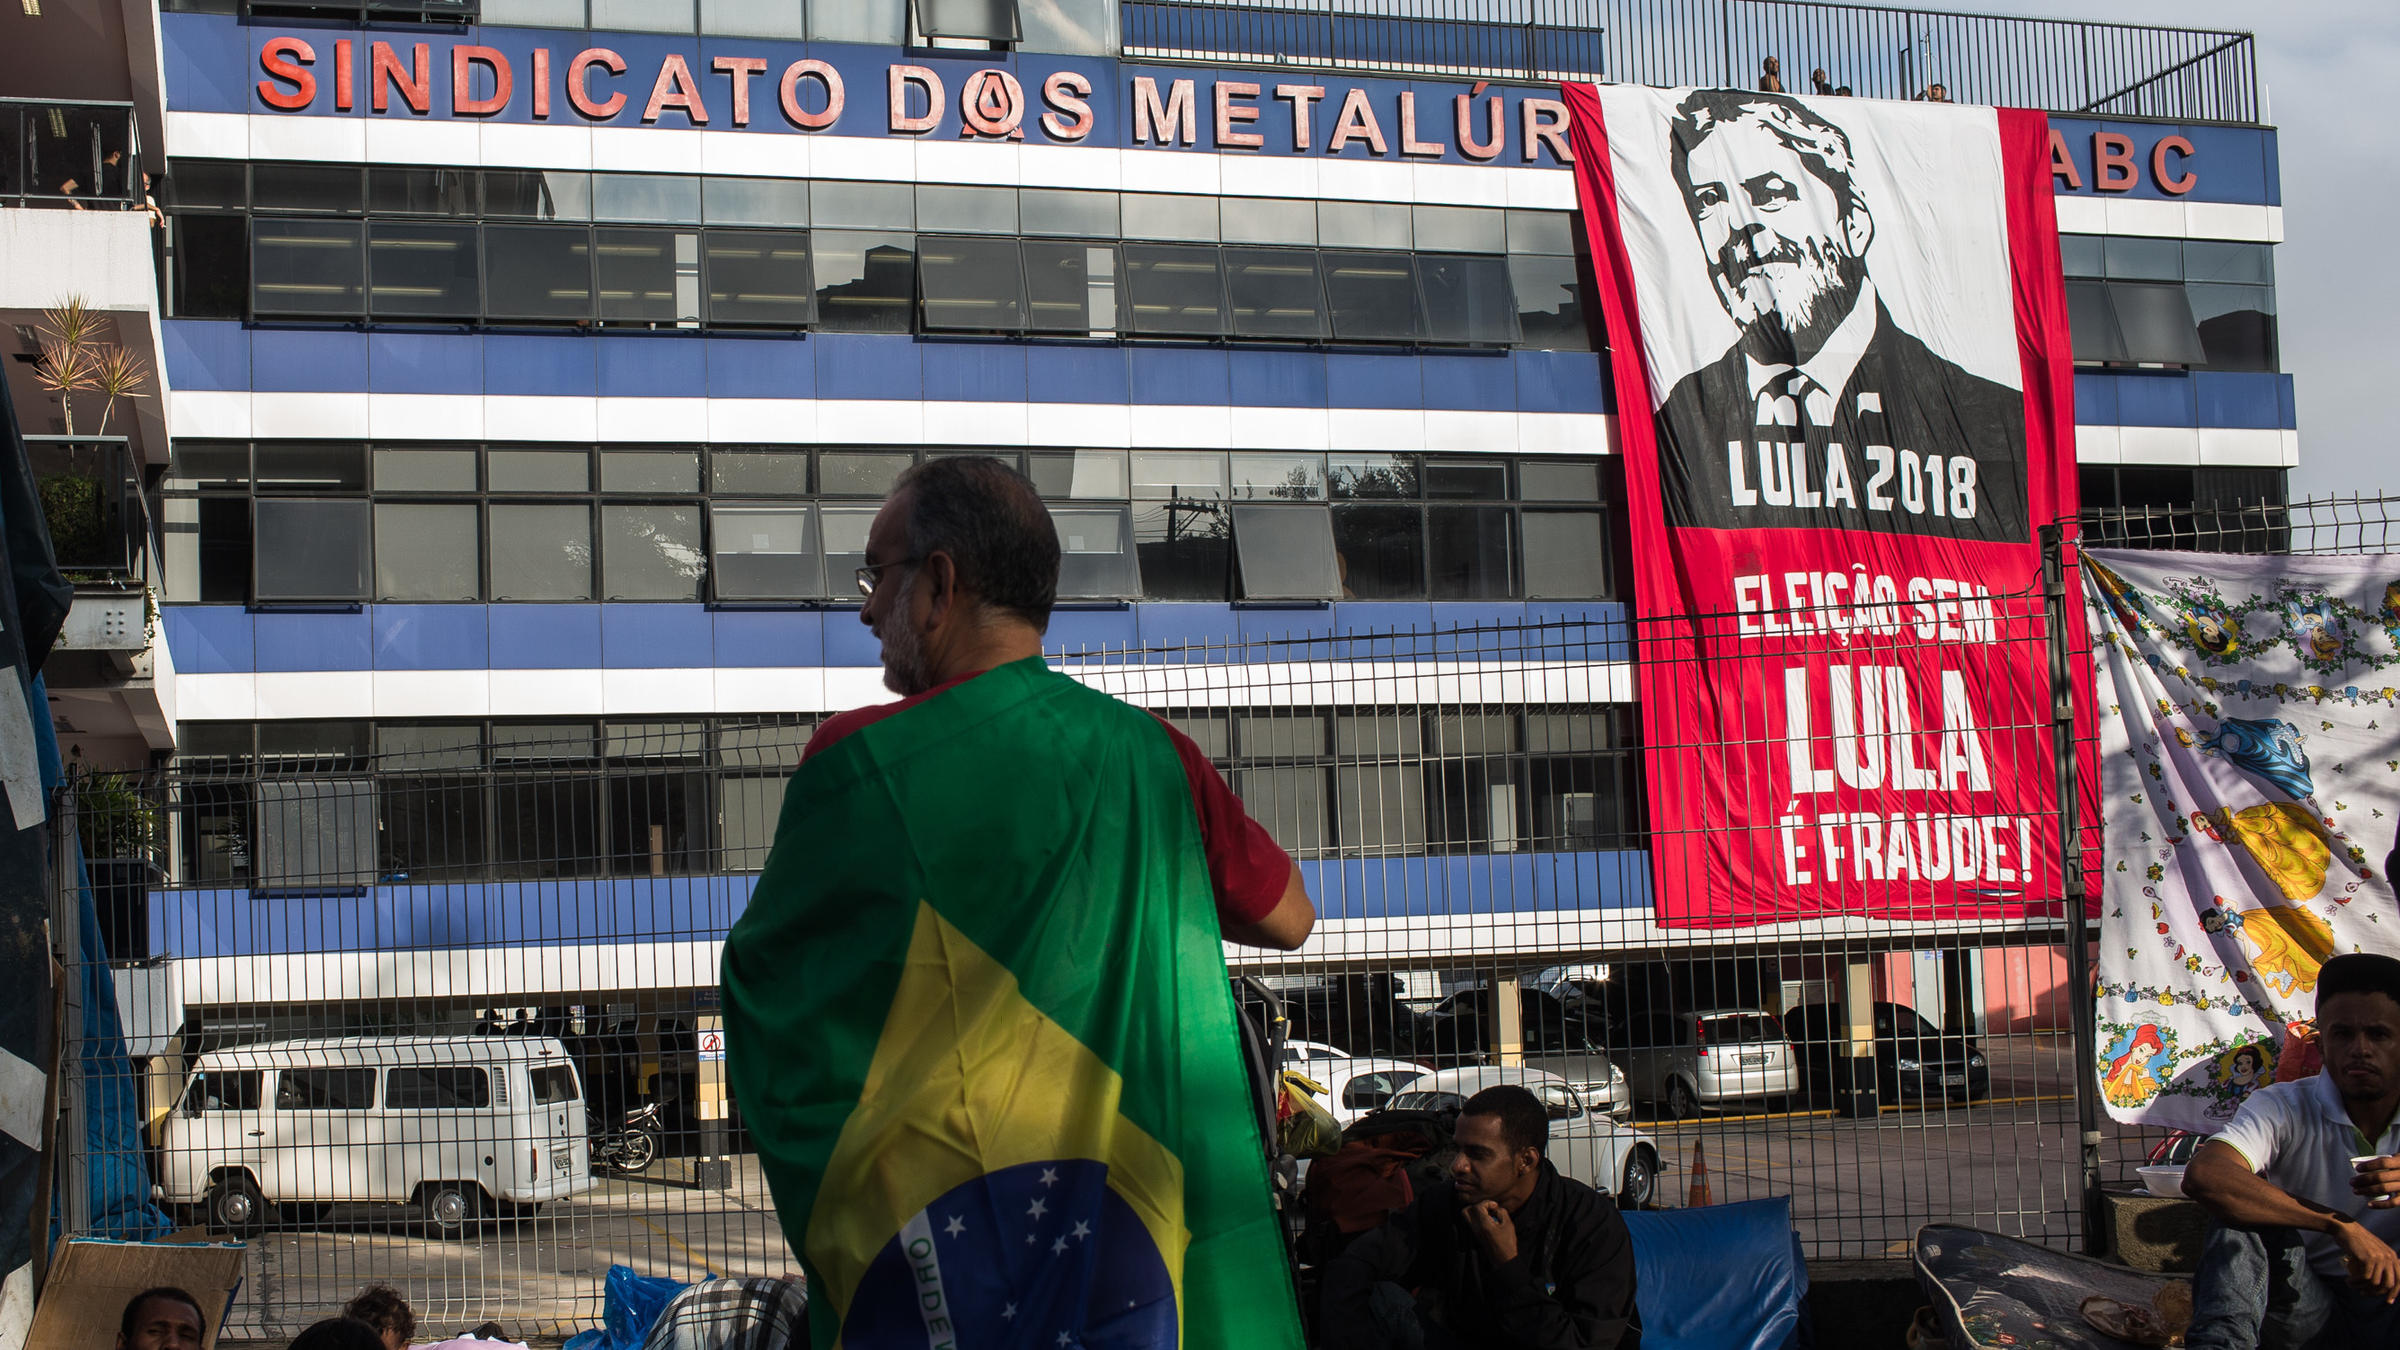 A supporter of former President Luiz Inacio Lula da Silva waits in front of the building where Lula holed up after defying a court order to turn himself